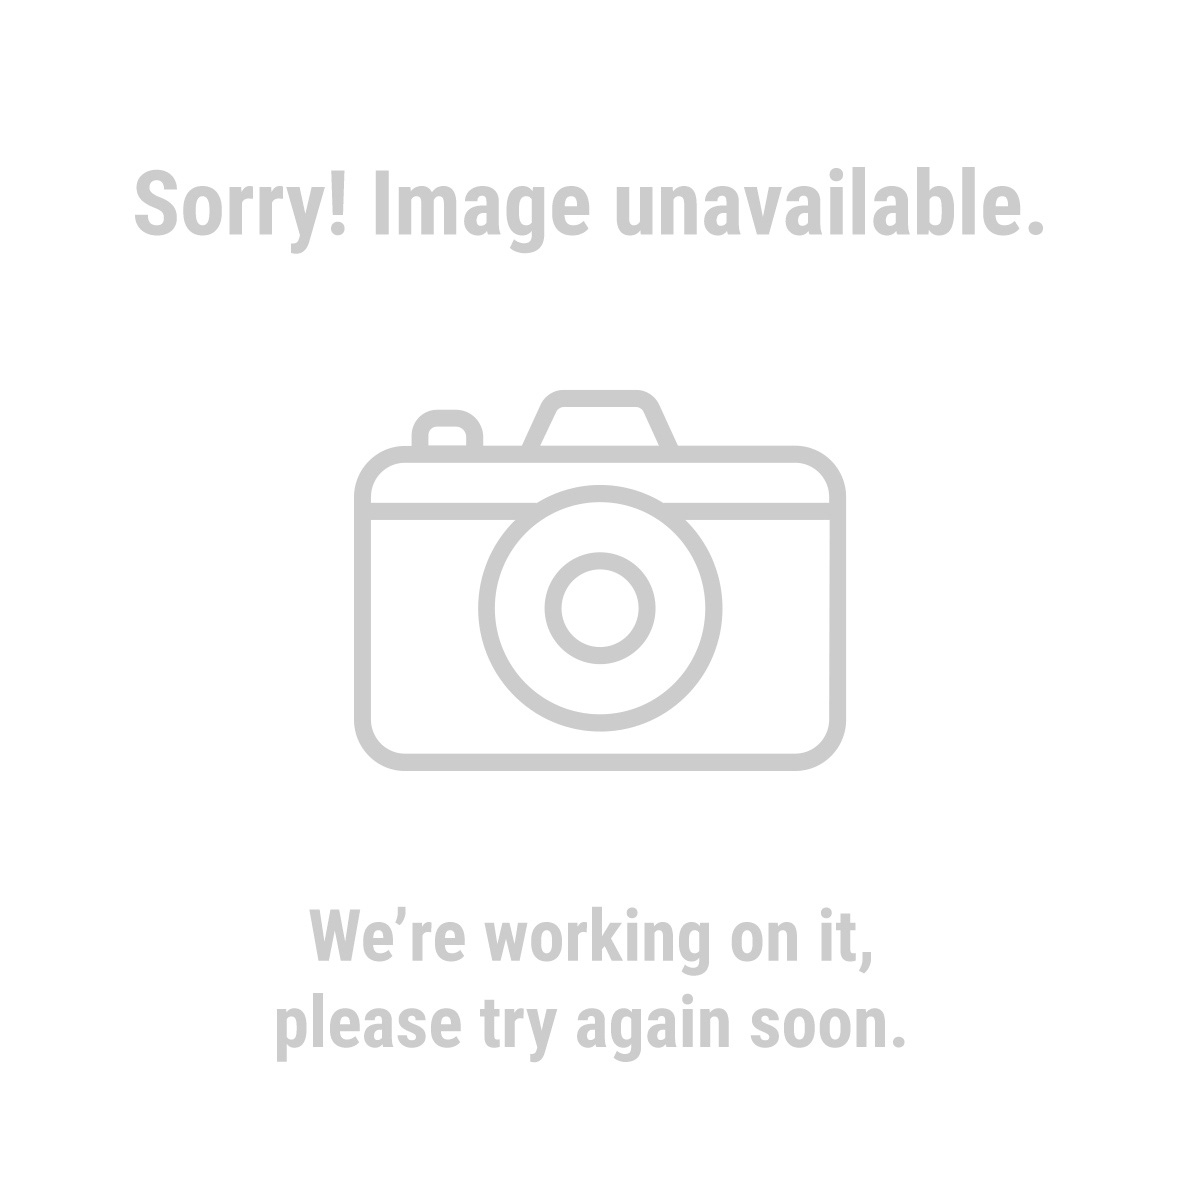 Storehouse 67644 205 Piece HNBR O-Ring Kit